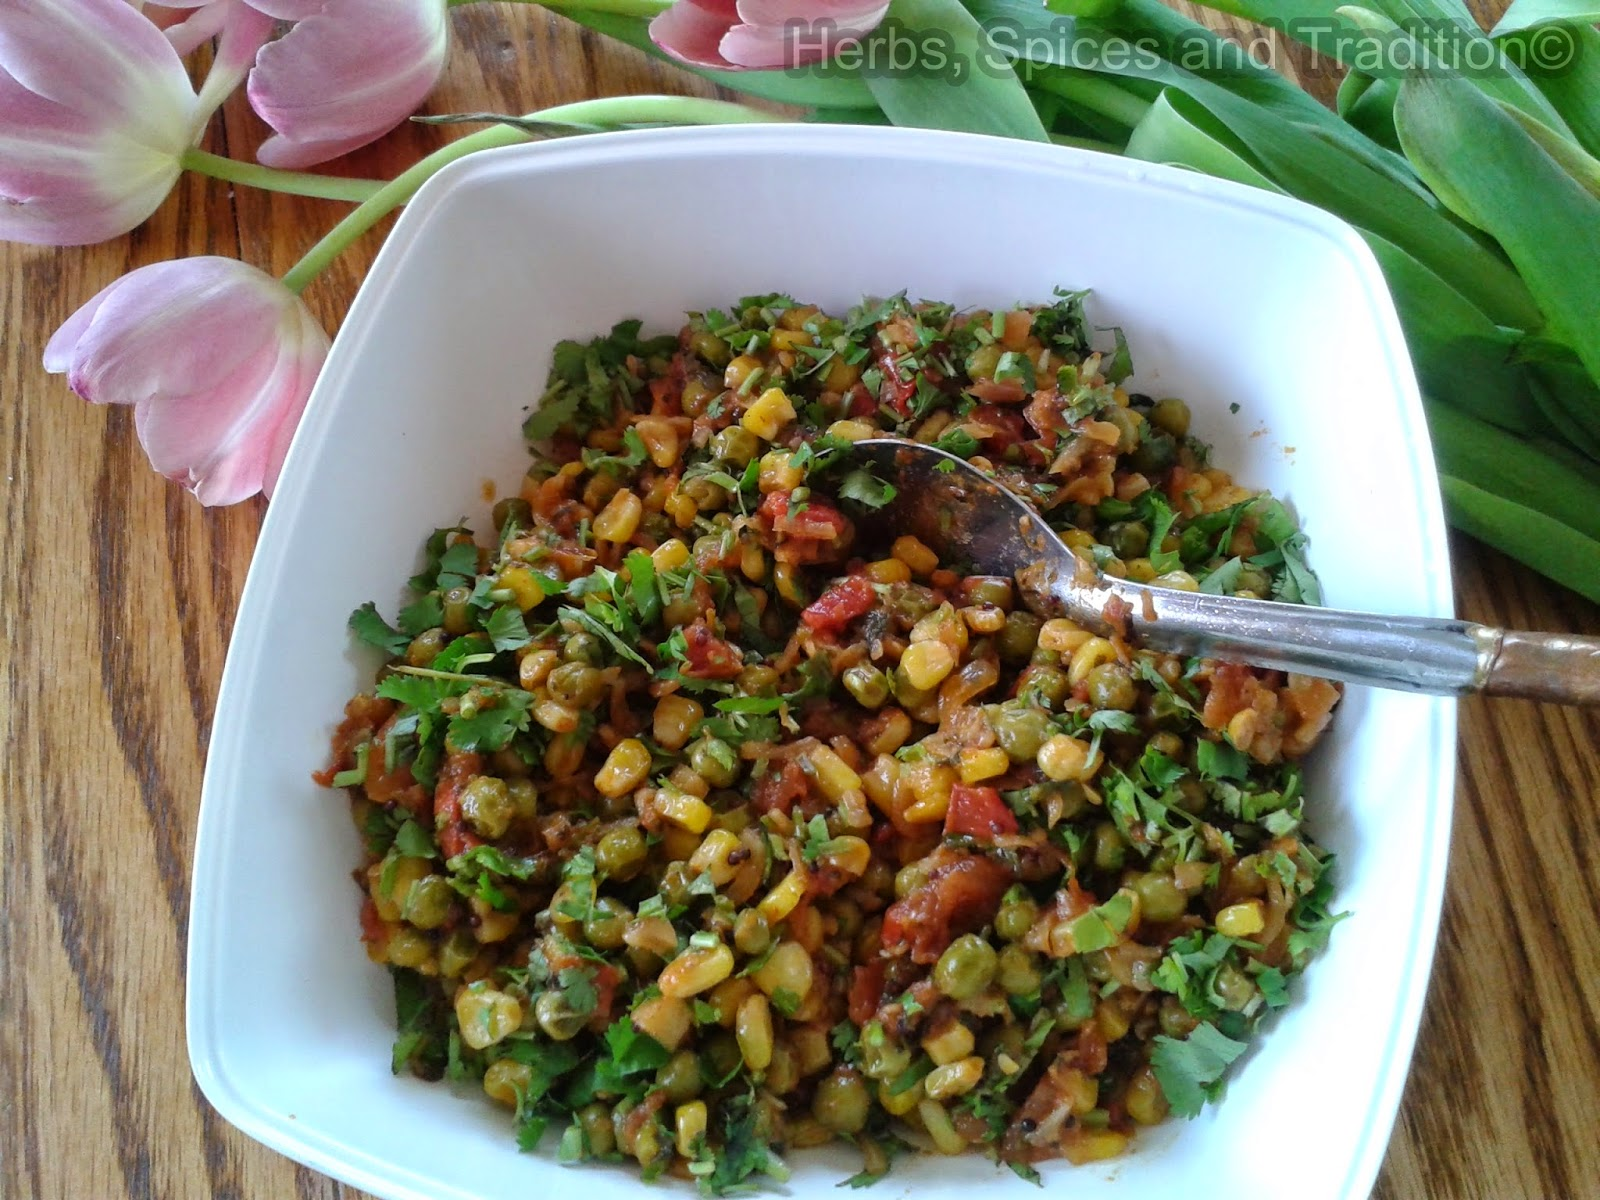 Herbs, Spices and Tradition: PEAS AND SWEET CORN SIDE DISH